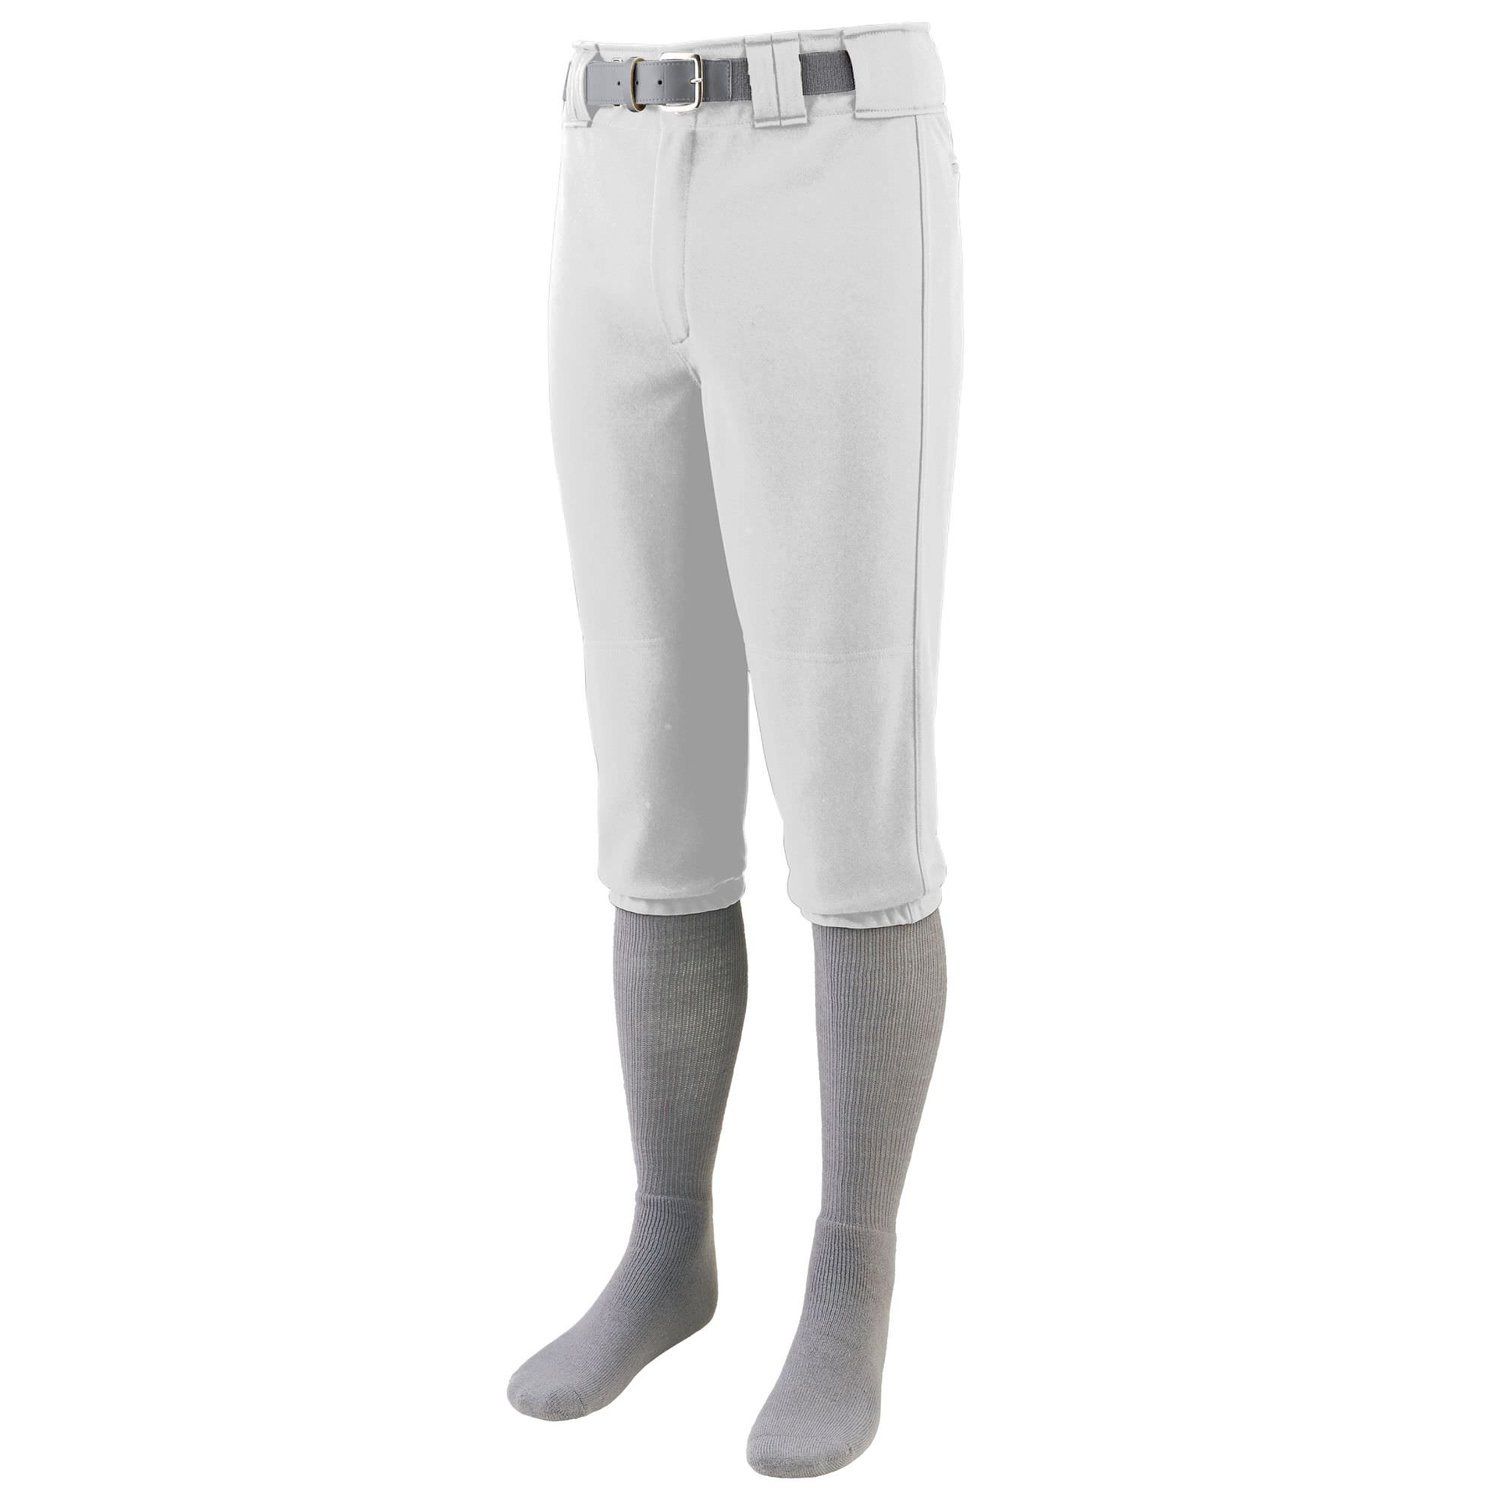 Augusta Sportswear Men's Series Knee Length Baseball Pant - White 1452A S